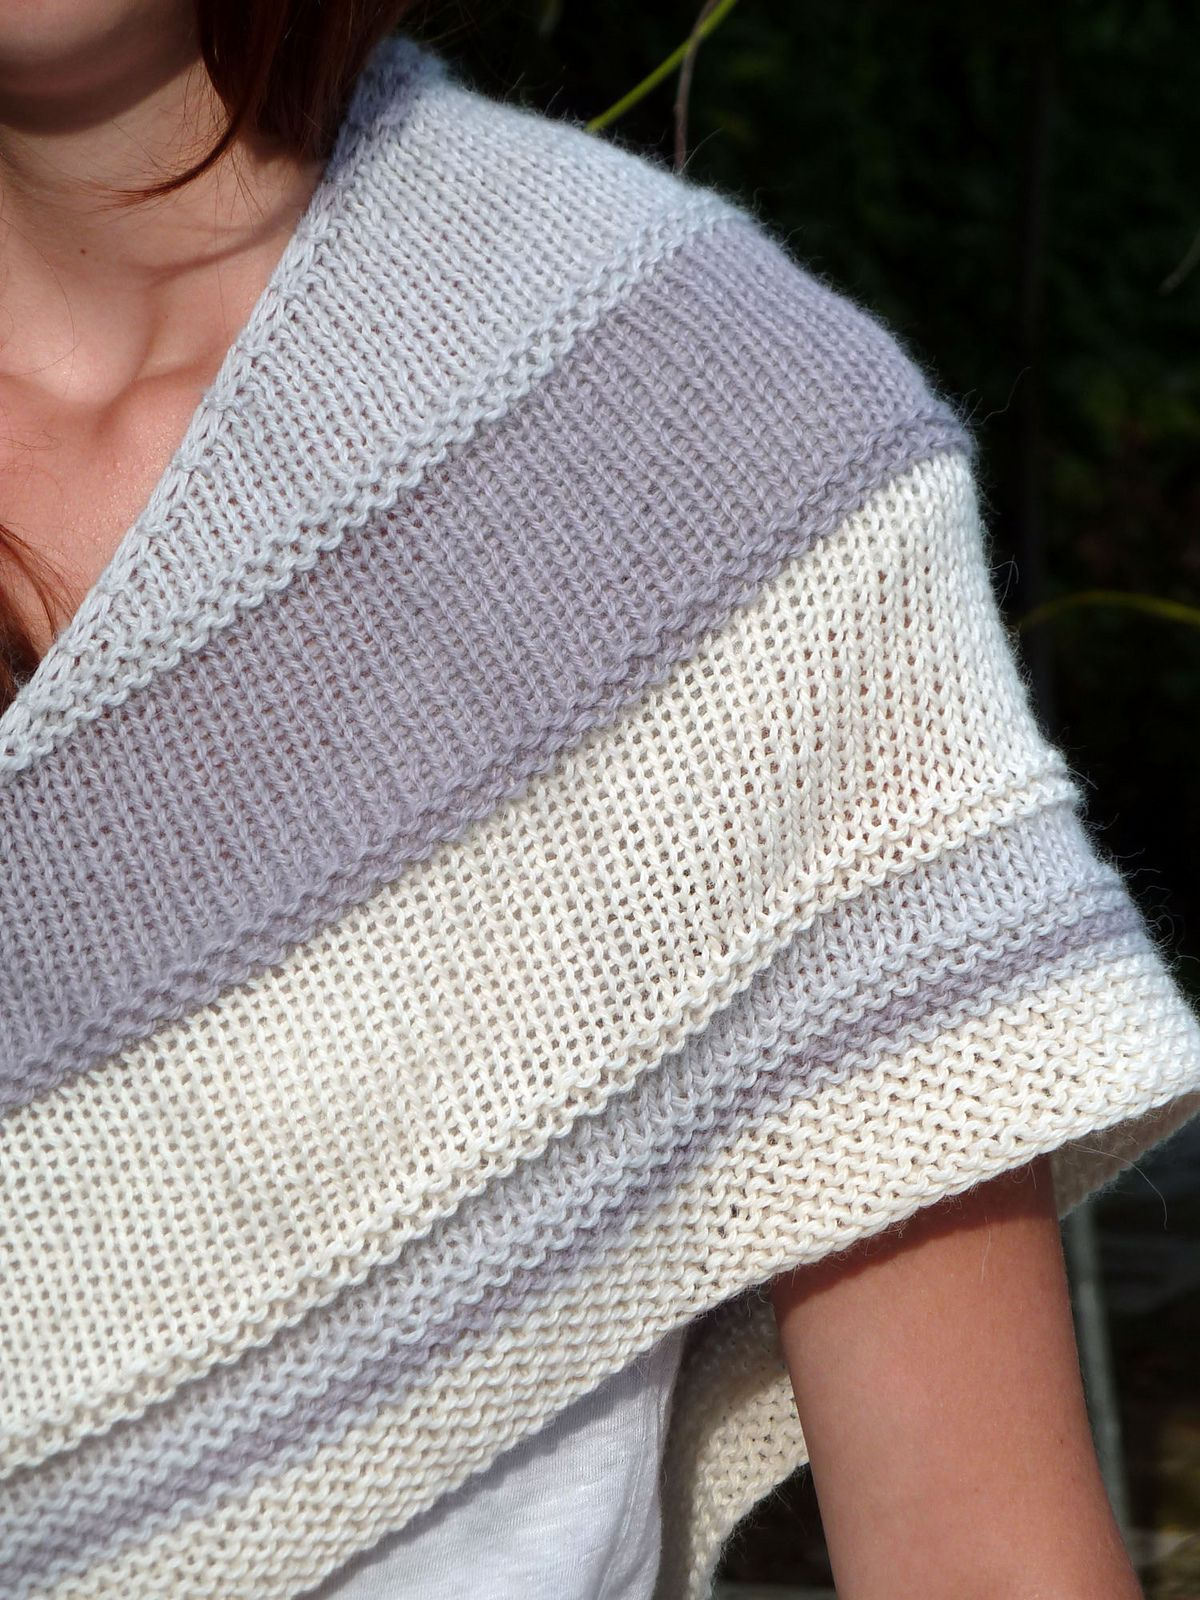 Ravelry: Douceur by Mademoiselle C | Purple Accessories | Pinterest ...